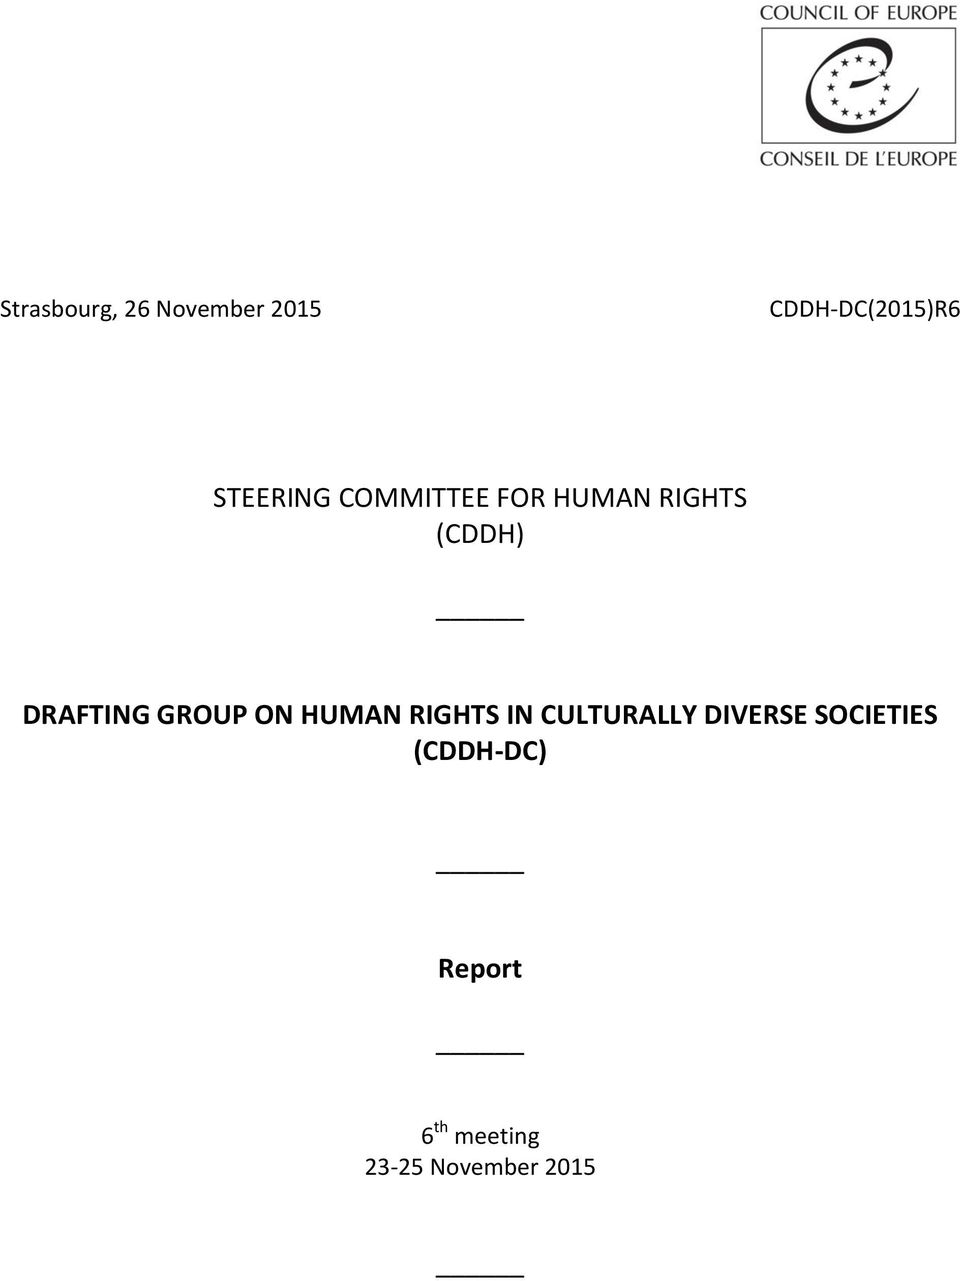 DRAFTING GROUP ON HUMAN RIGHTS IN CULTURALLY